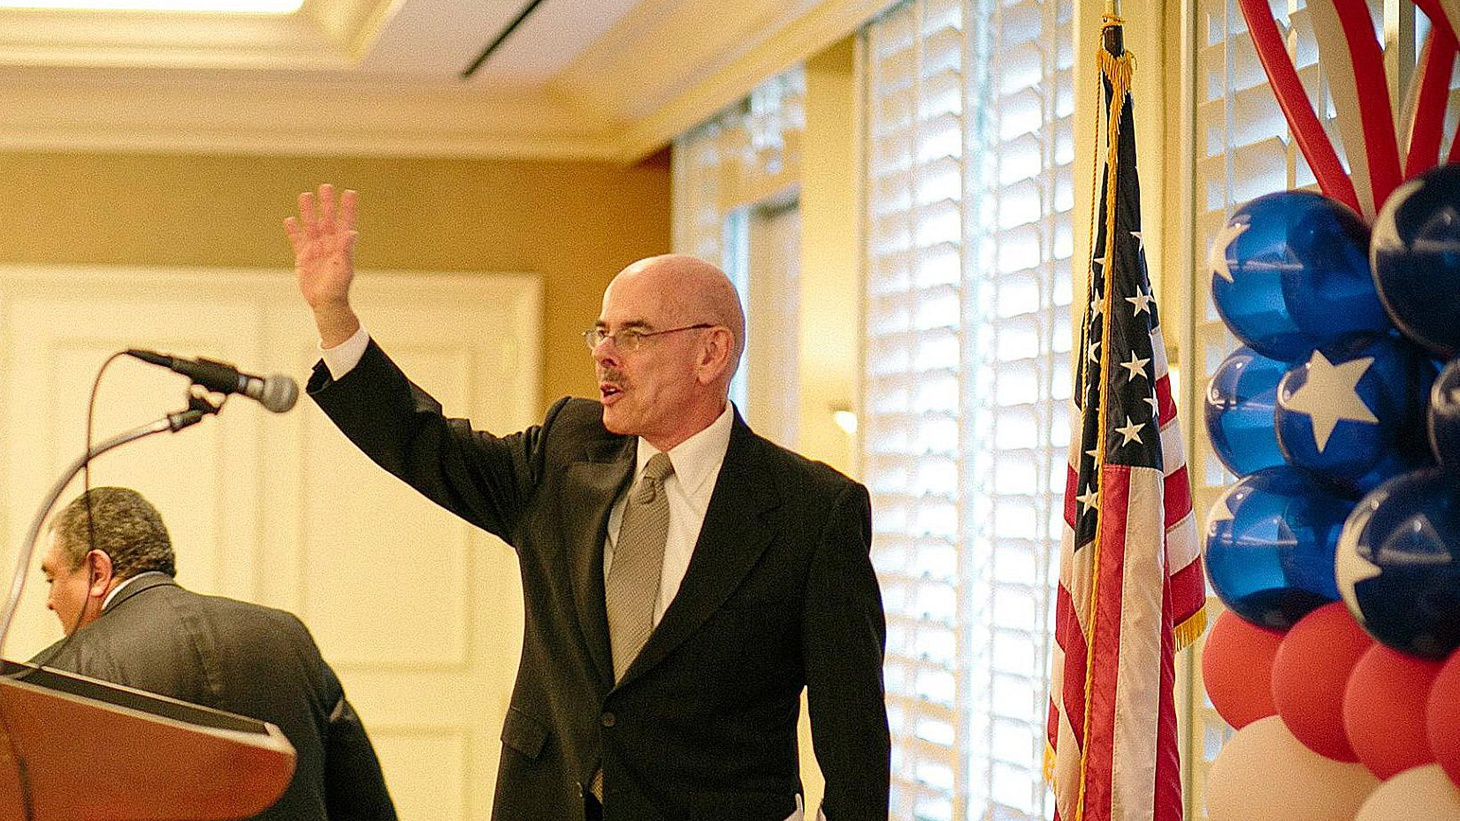 After 40 years, LA Democrat Henry Waxman has announced he won't run for re-election. What's next, for the Westside and South Bay, a political feeding frenzy?